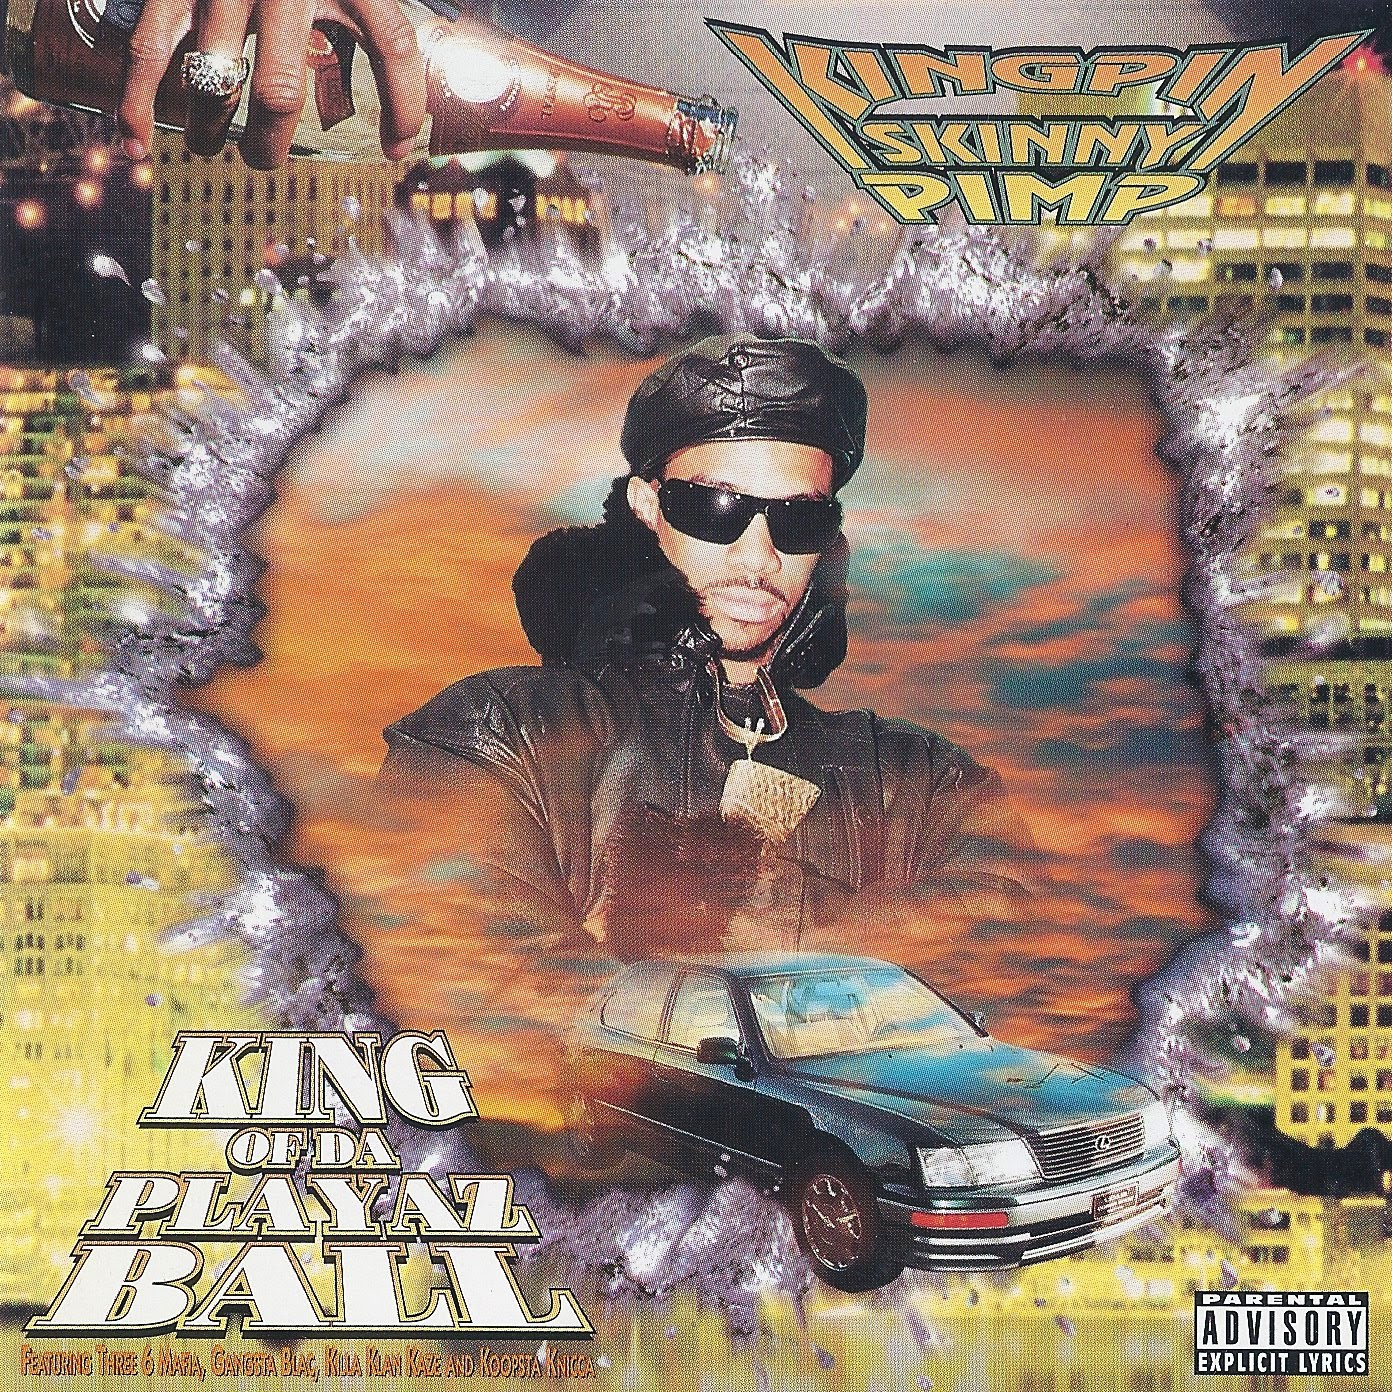 Kingpin Skinny Pimp - King Of Da Playaz Ball